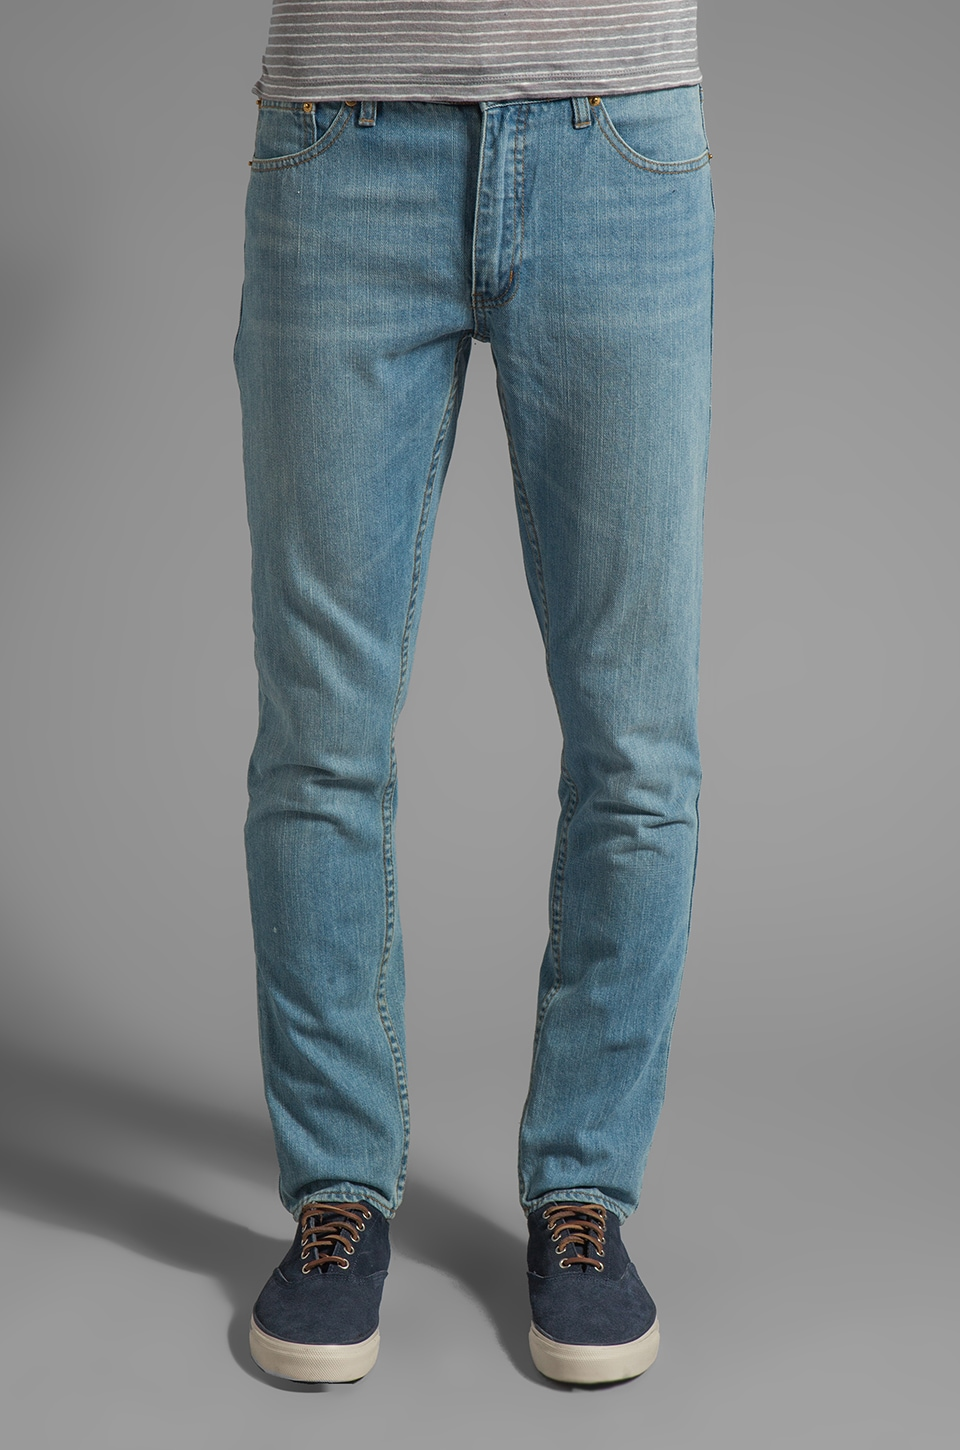 Cheap Monday High Slim Jeans in Light Blue